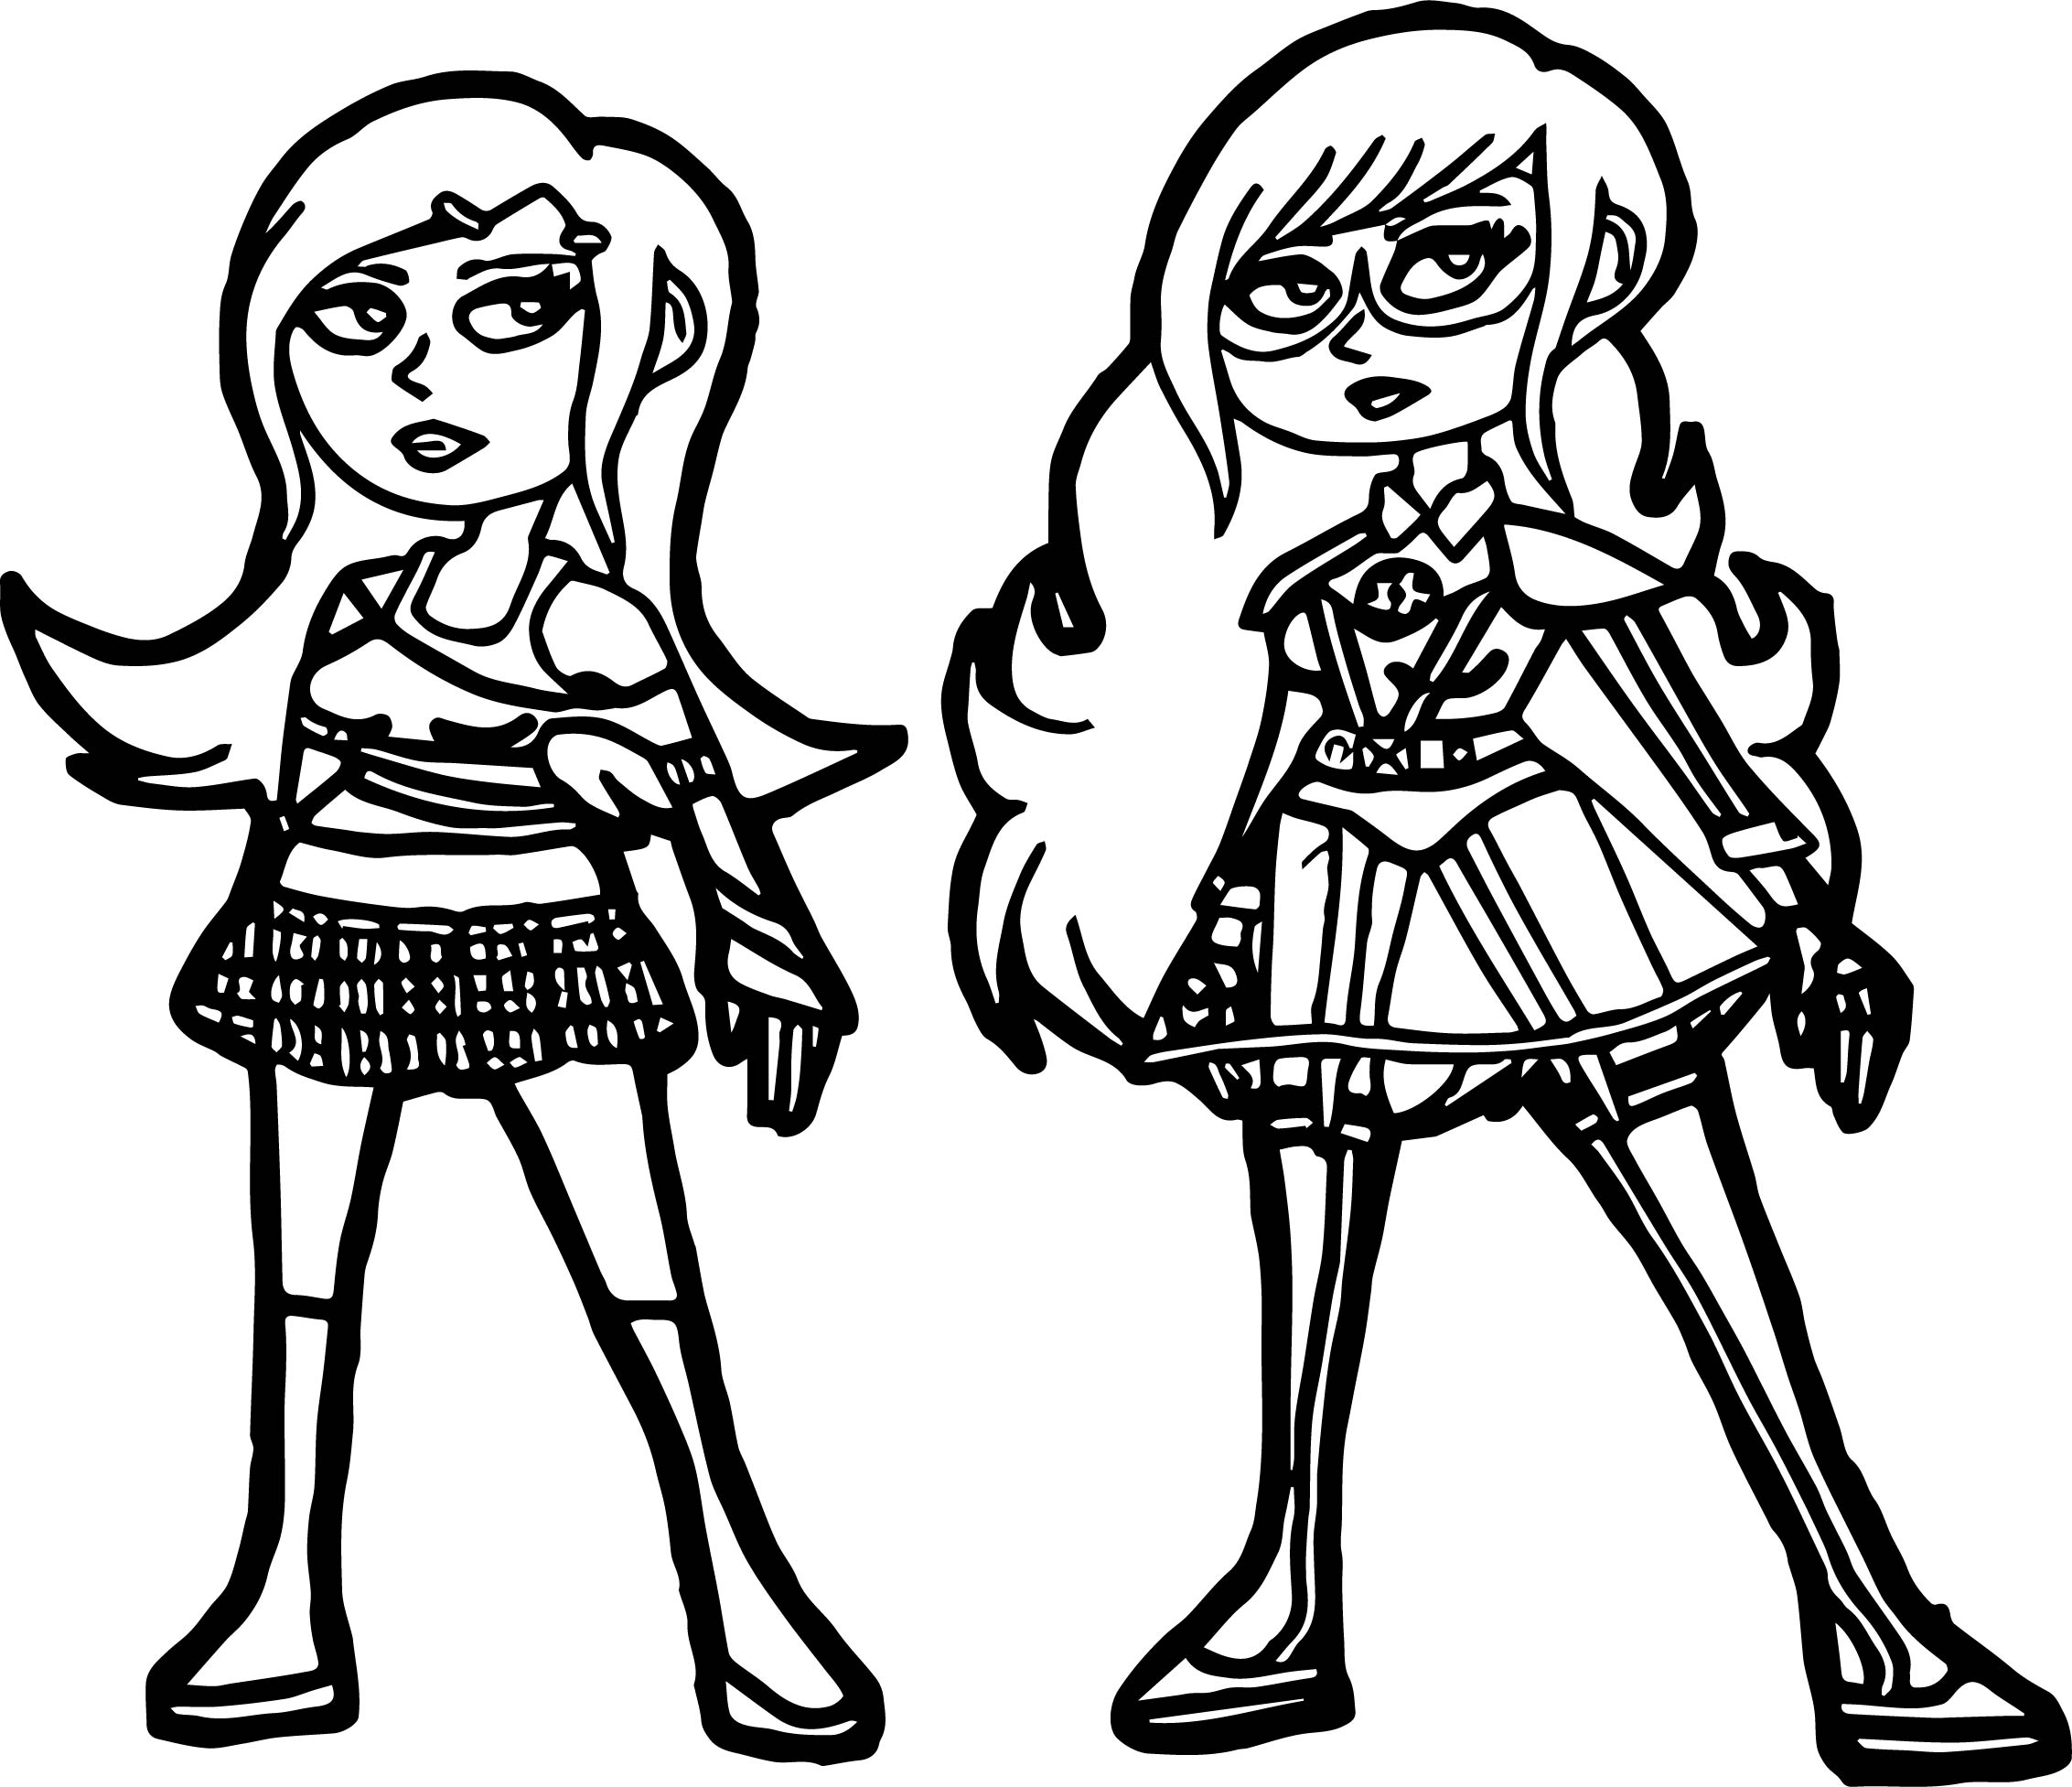 Supernoobs oc lidynaea lydia sparacello coloring page for Lydia coloring page